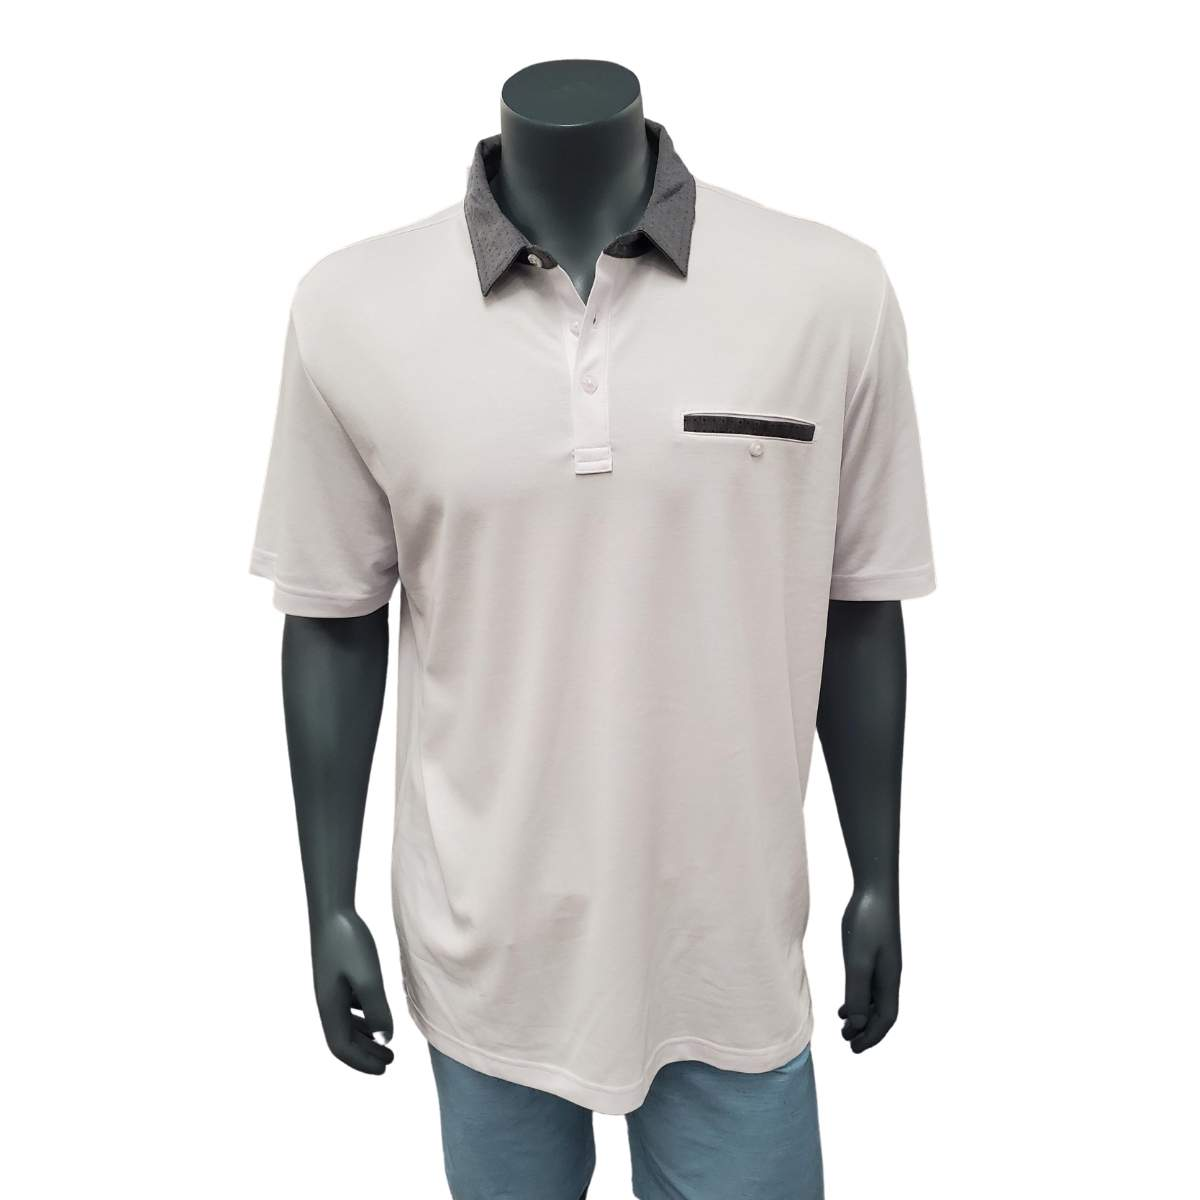 TravisMathew Last Things First Polo